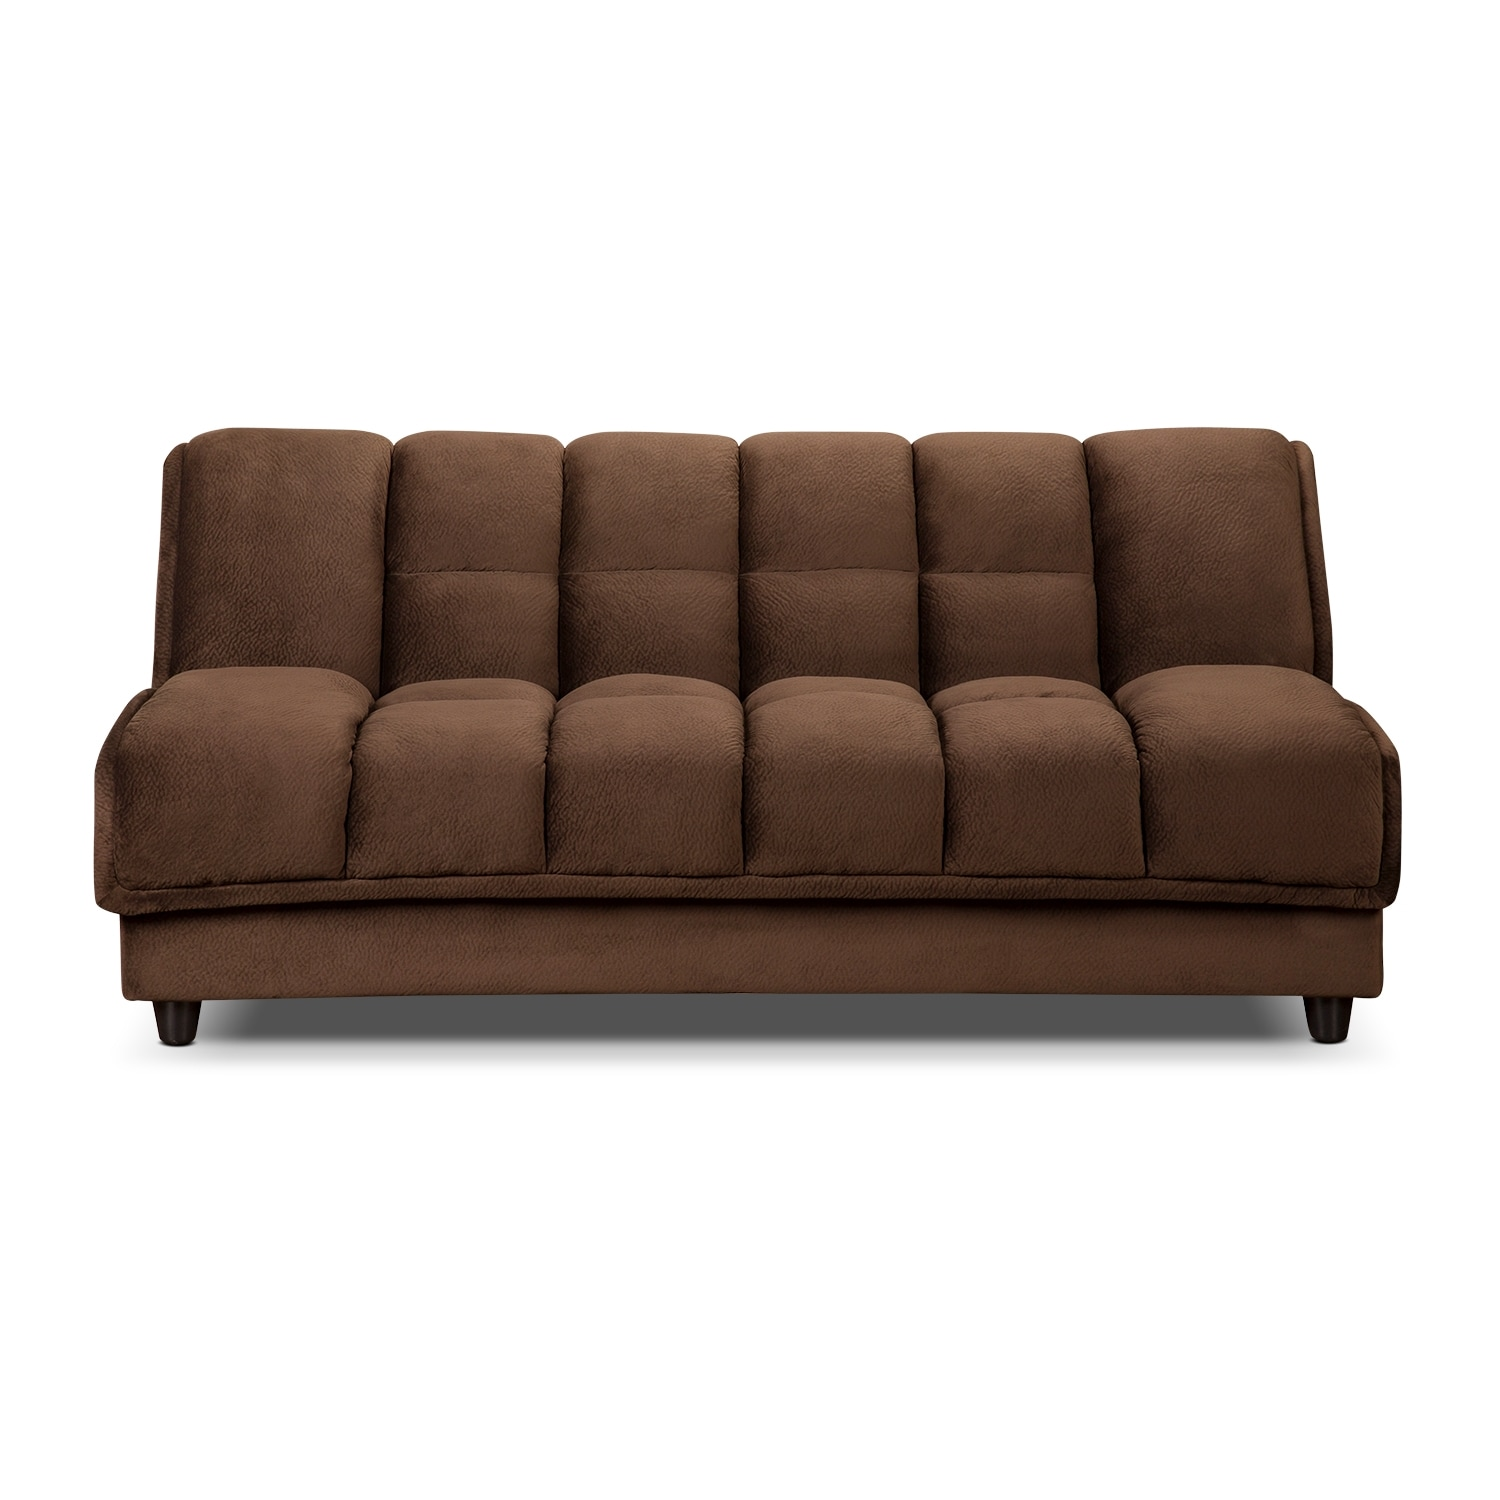 Bennett Futon Sofa Bed Espresso American Signature Furniture